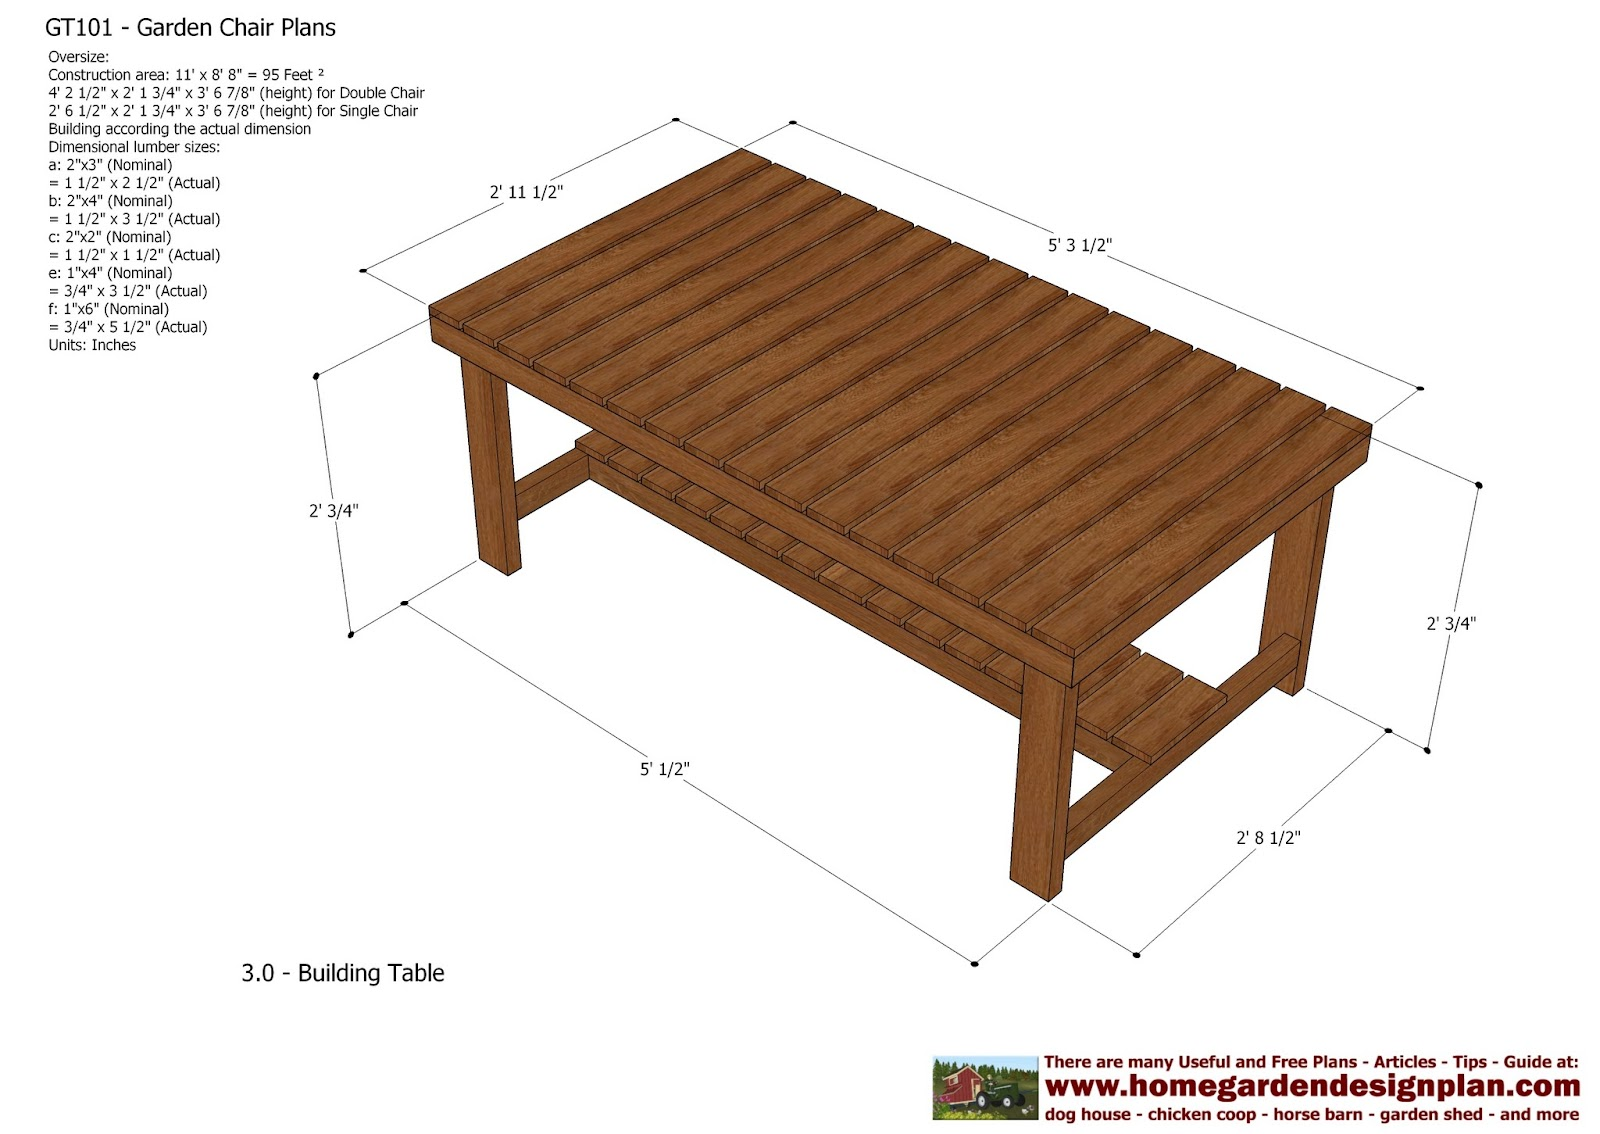 home garden plans gt101 garden teak table plans out